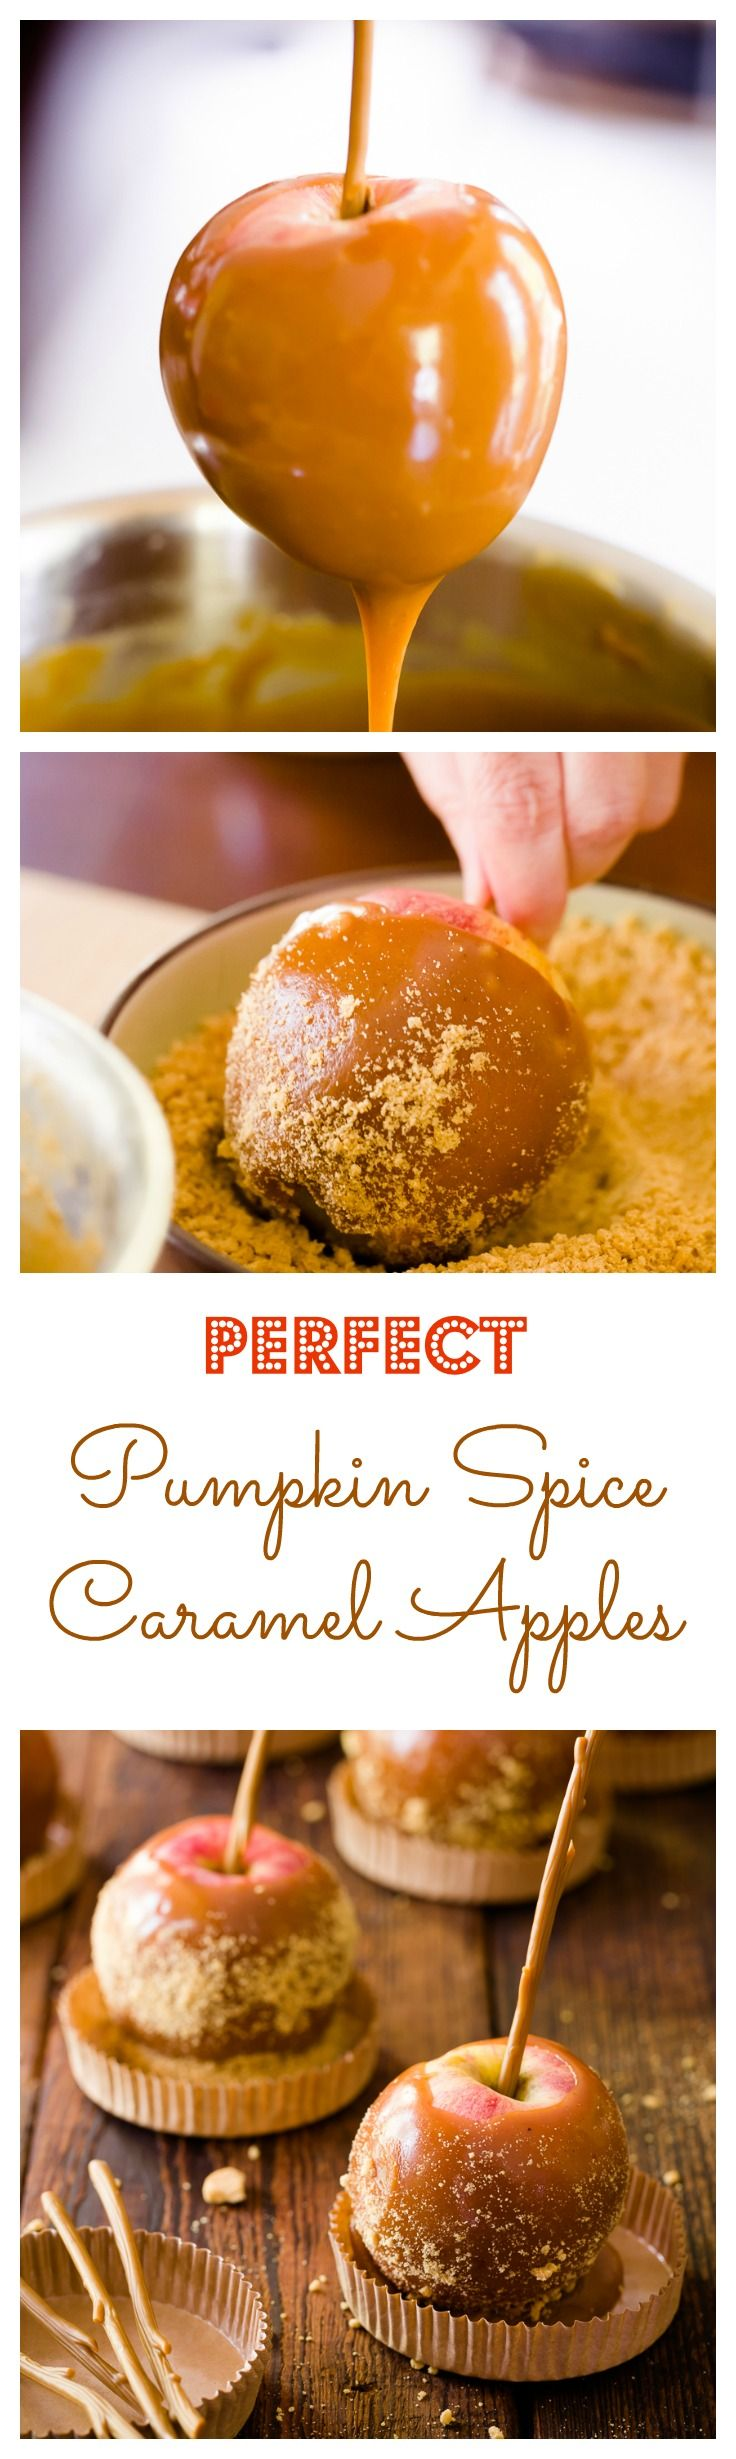 Perfect Pumpkin Spice Caramel Apples